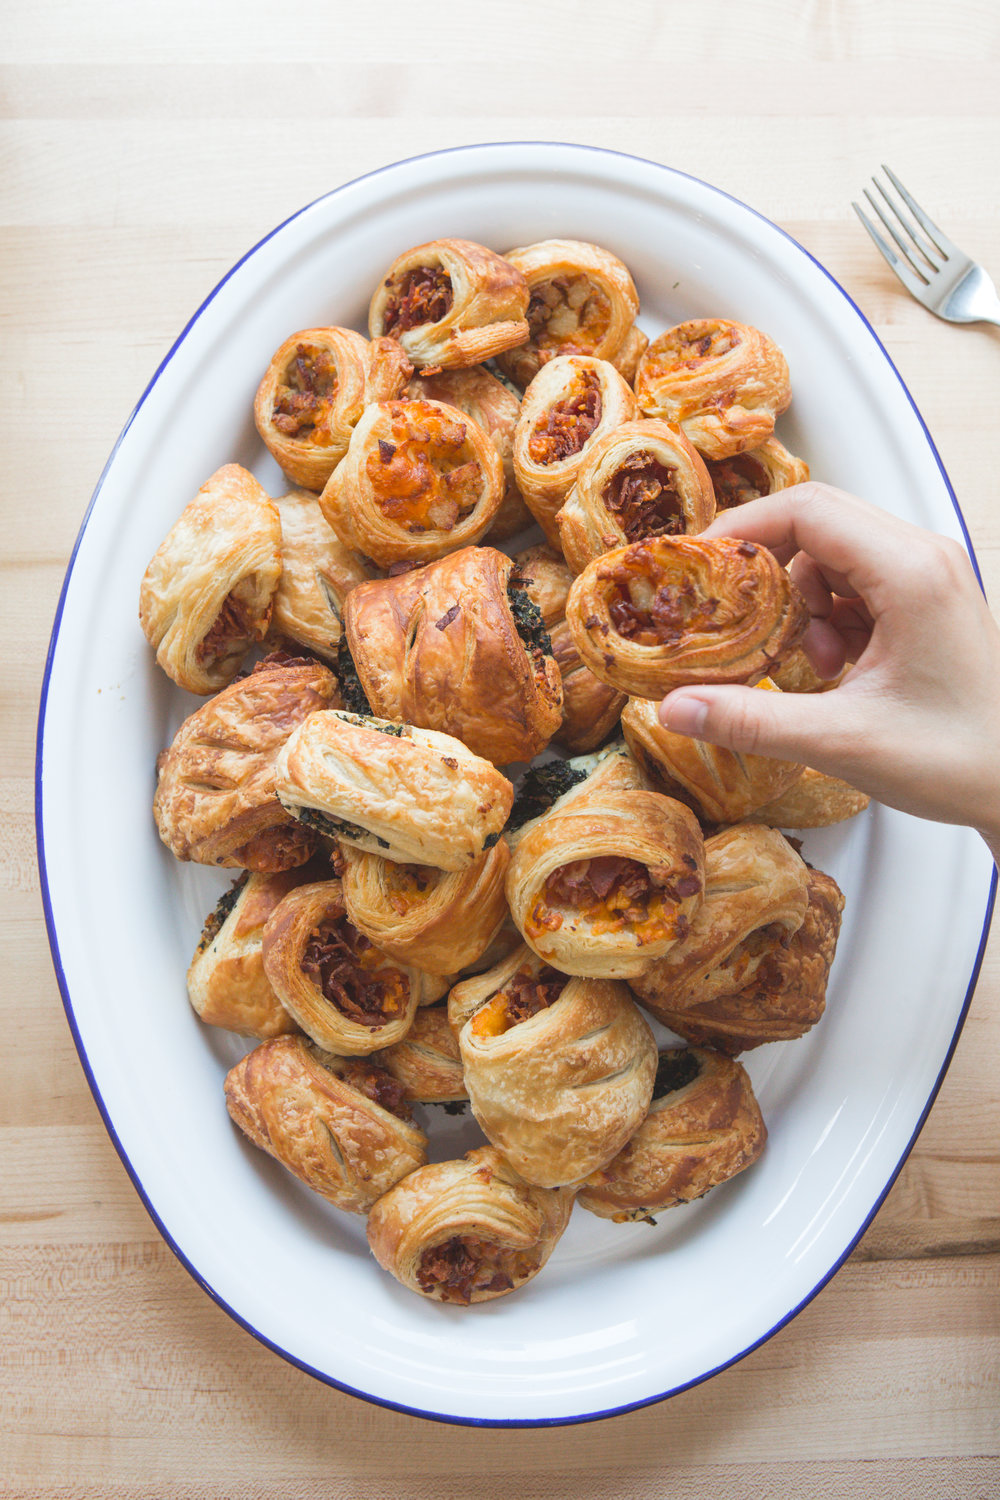 3 flavors of croissant rolls : Sausage & Cheddar, Bacon and Cheddar, Feta & Kale (V) These look like sausage rolls - but are made with croissant dough (not fillo or puff) and we add cheese. Available in 6 packs $15 and 12 packs $27.50 -by flavor.